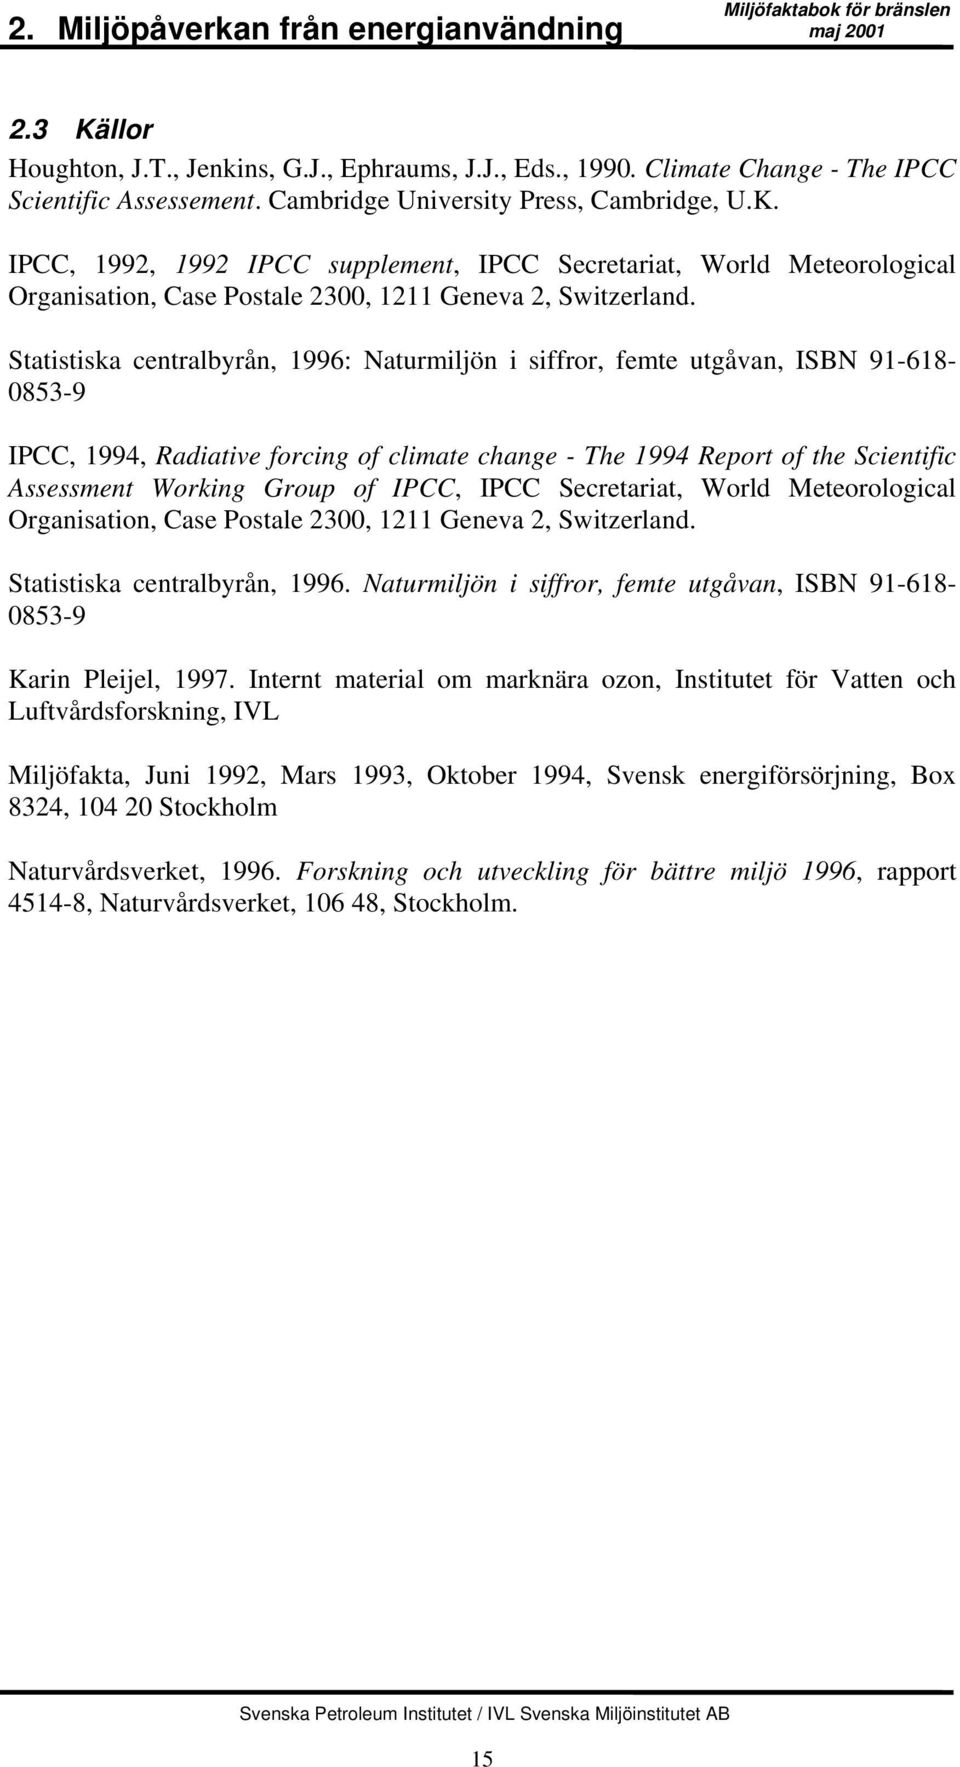 Statistiska centralbyrån, 1996: Naturmiljön i siffror, femte utgåvan, ISBN 91-618- 0853-9 IPCC, 1994, Radiative forcing of climate change - The 1994 Report of the Scientific Assessment Working Group